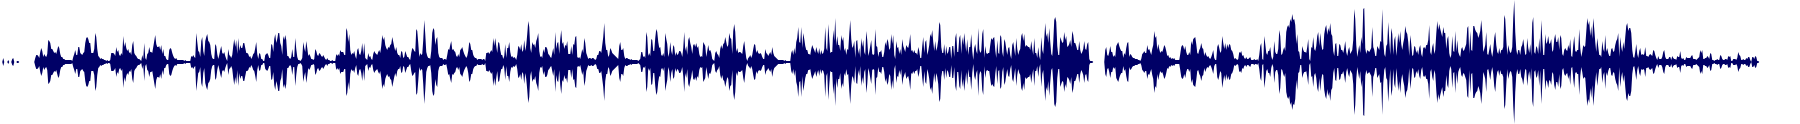 waveform of track #71174